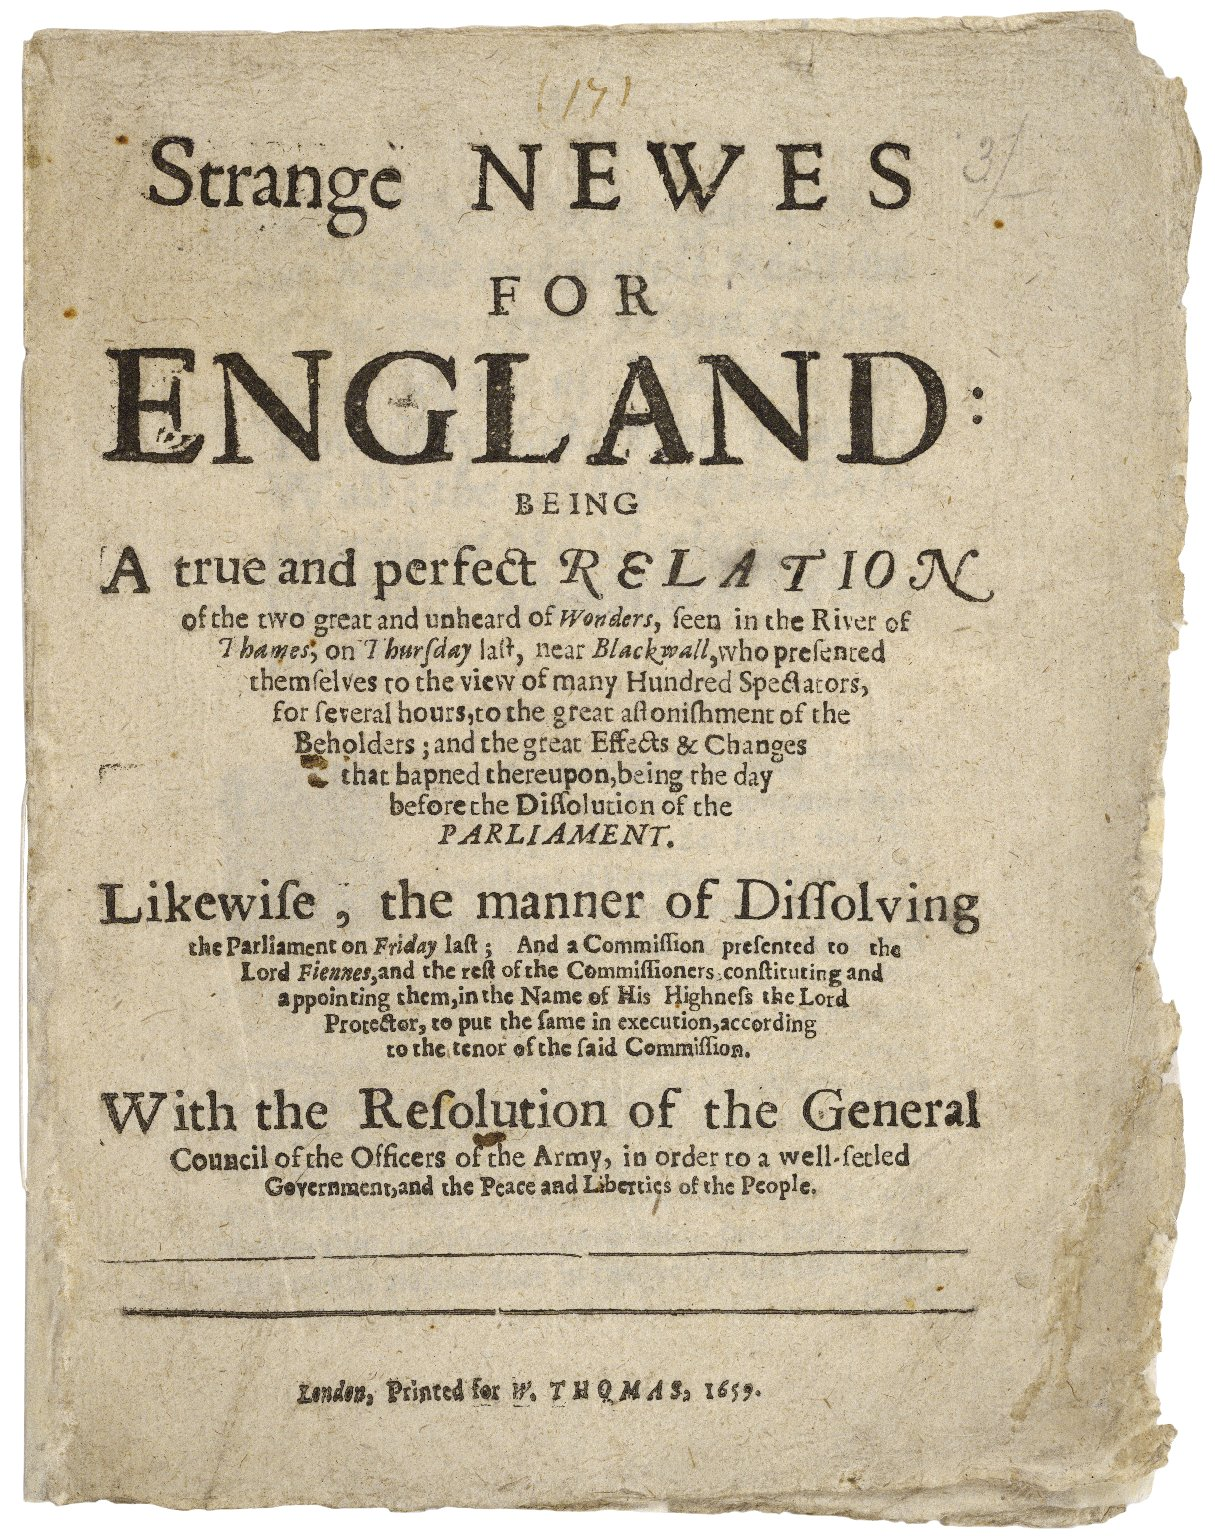 Strange newes for England: being a true and perfect relation of the two great and unheard of wonders, seen in the river of Thames, on Thursday last, near Blackwall, who presented themselves to the view of many hundred spectators, for several hours, to the great astonishment of the beholders; and the great effects & changes that hapned thereupon, being the day before the dissolution of the parliament. Likewise, the manner of dissolving the parliament on Friday last; and a commission presented to the Lord Fiennes, and the rest of the commissioners constituting and appointing them, in the name of His Highness the Lord Protector, to put the same in execution, according to the tenor of the said commission. With the resolution of the general council of the officers of the army, in order to a well-setled government, and the peace and liberties of the people.